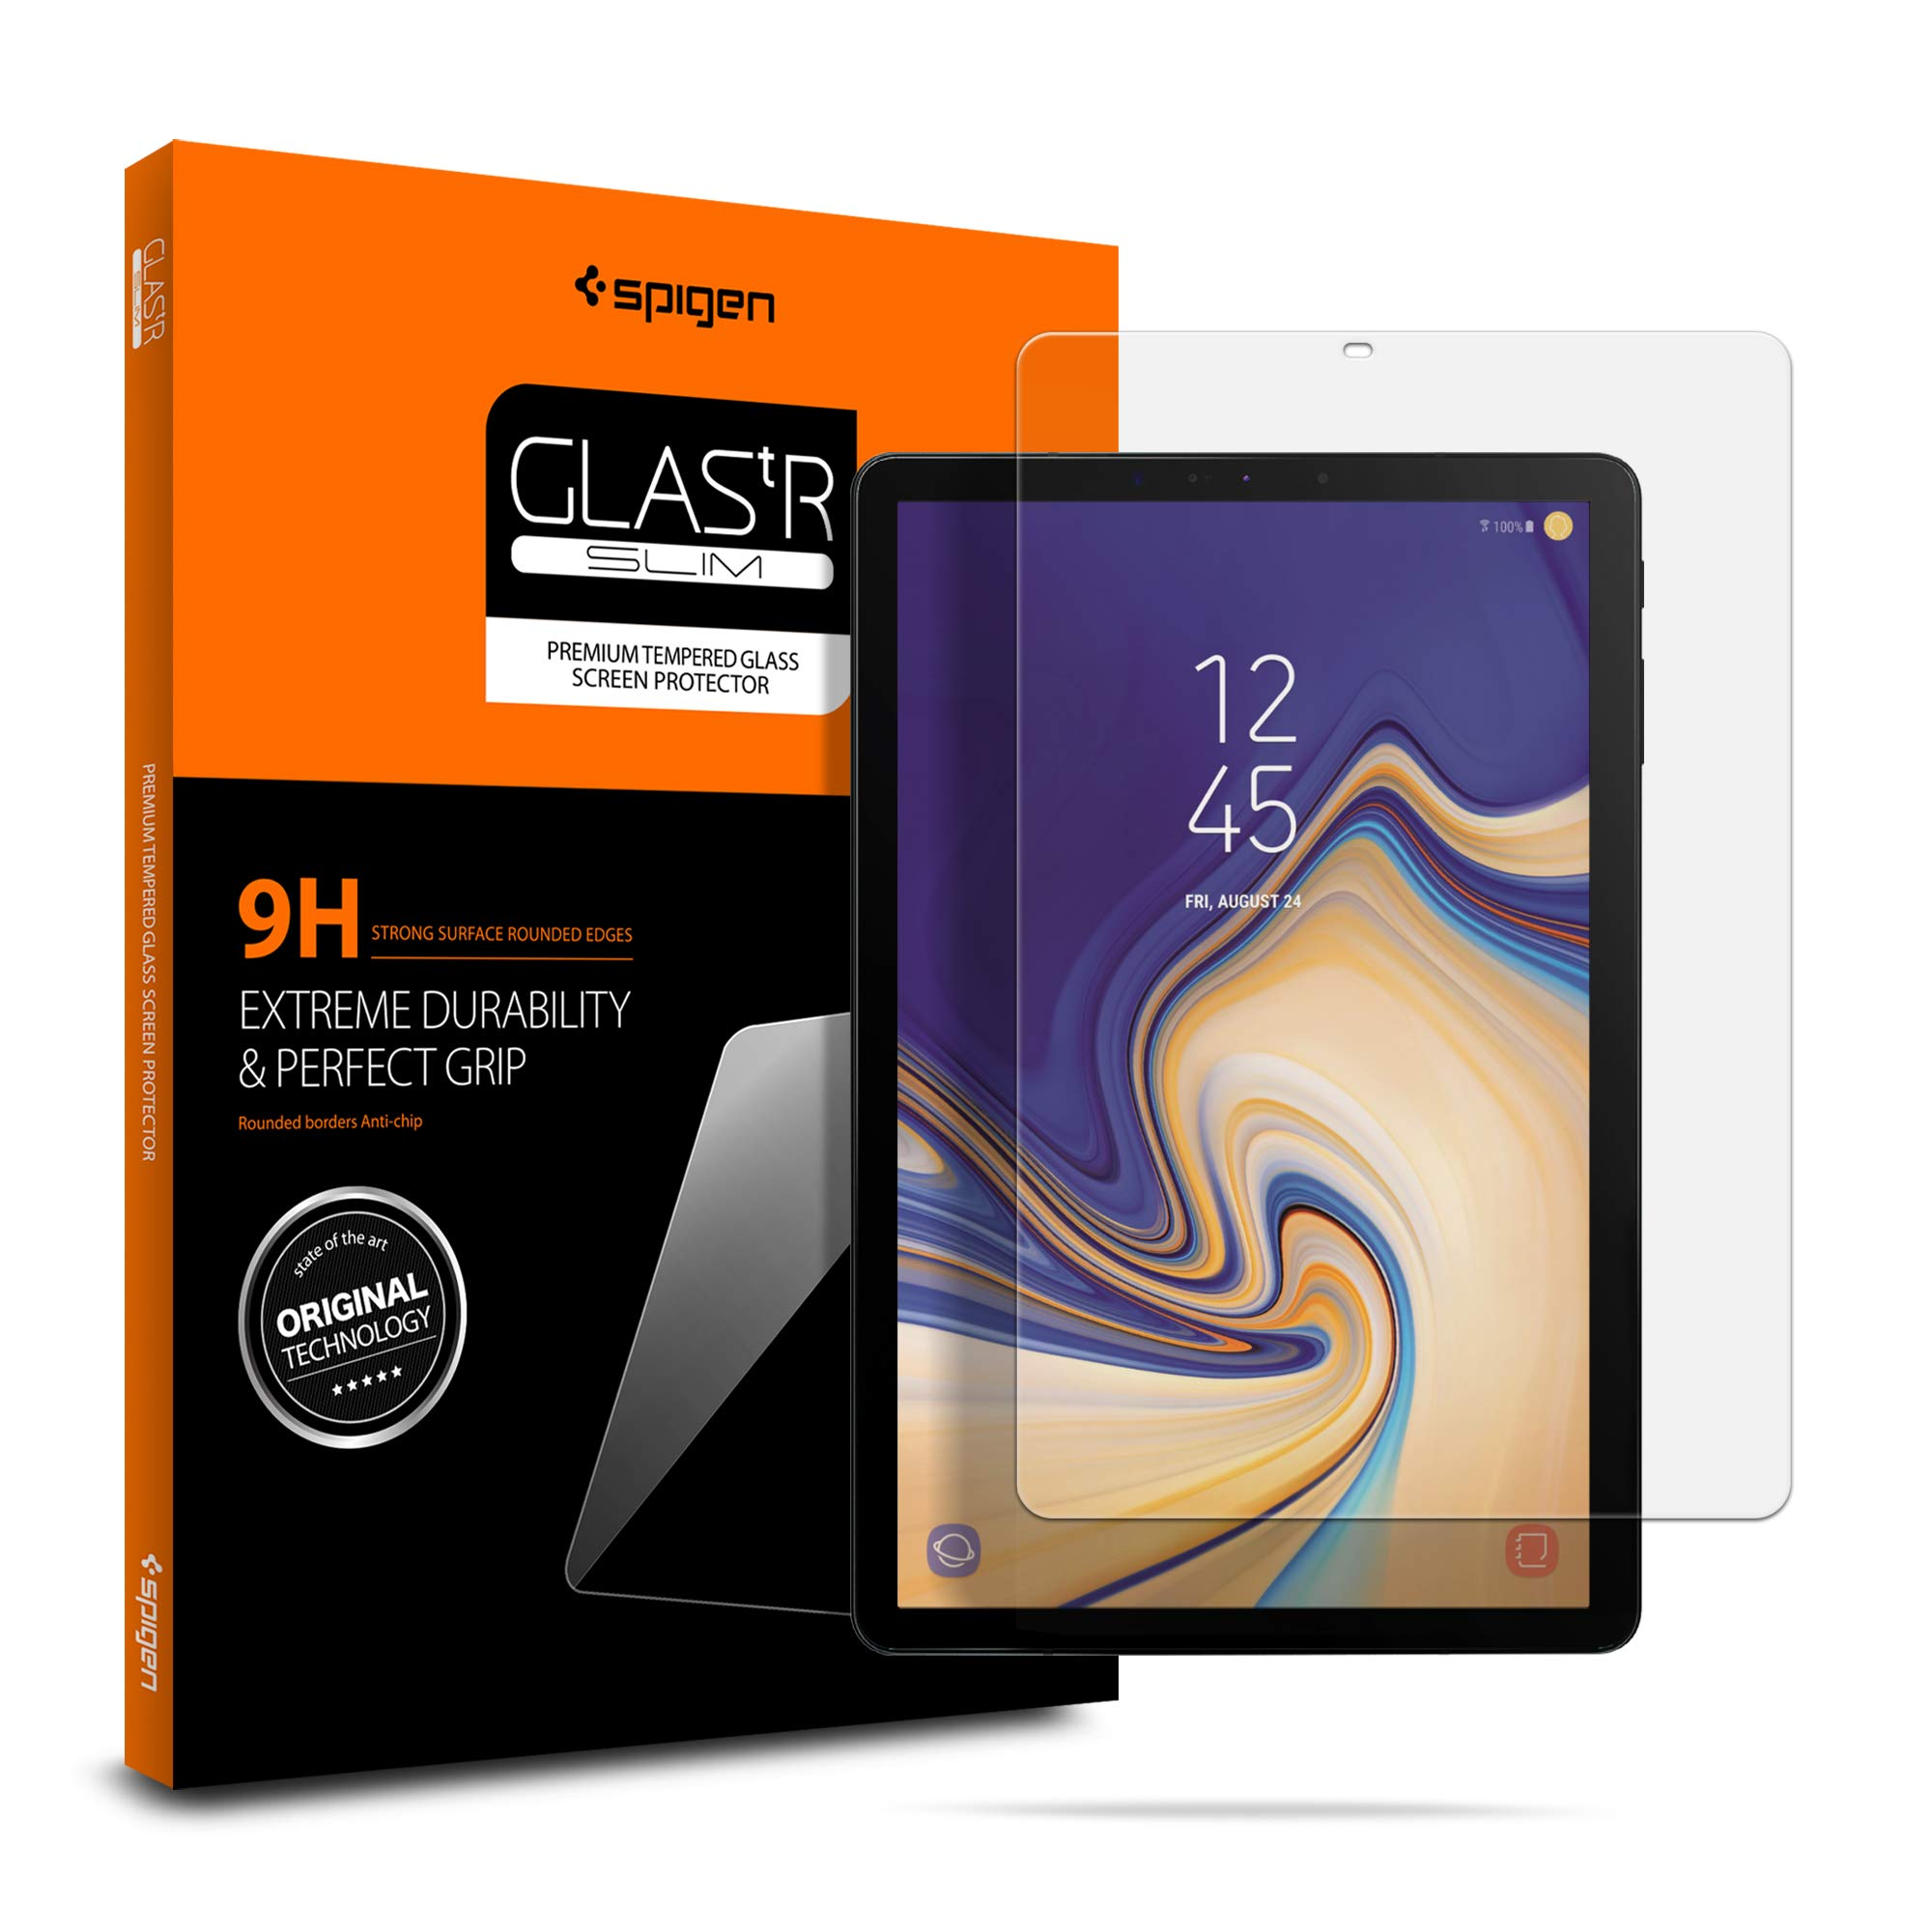 Spigen Tempered Glass Screen Protector Designed for Samsung Galaxy Tab S4 (10.5 inch) (2018 Release) by Spigen